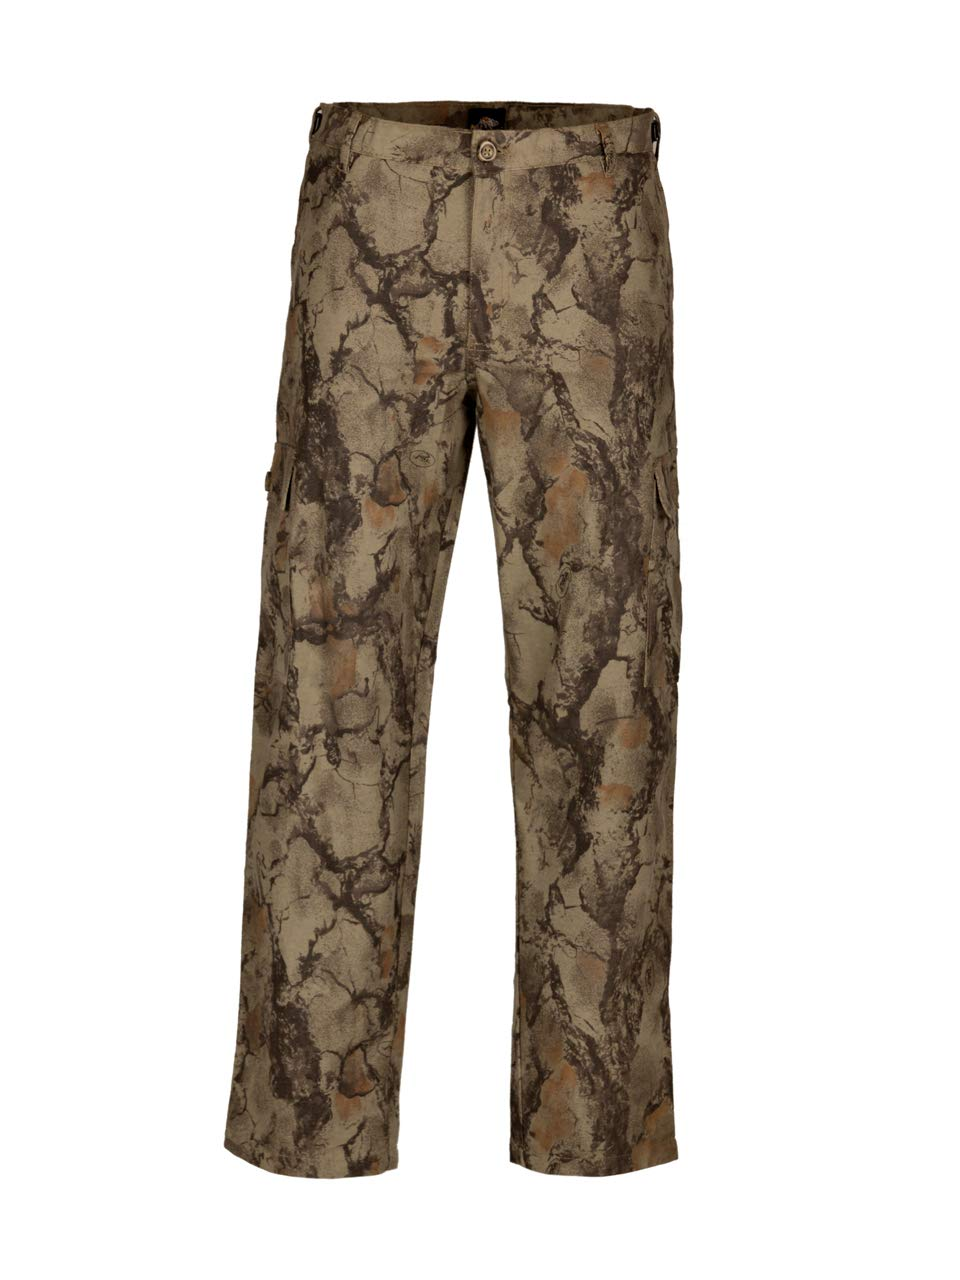 1c6d29c788698 COTTON FLANNEL CARGO PANTS: Our Natural Gear camo tactical pants are ideal  for any hunter who means business. They're made from a lightweight and ...